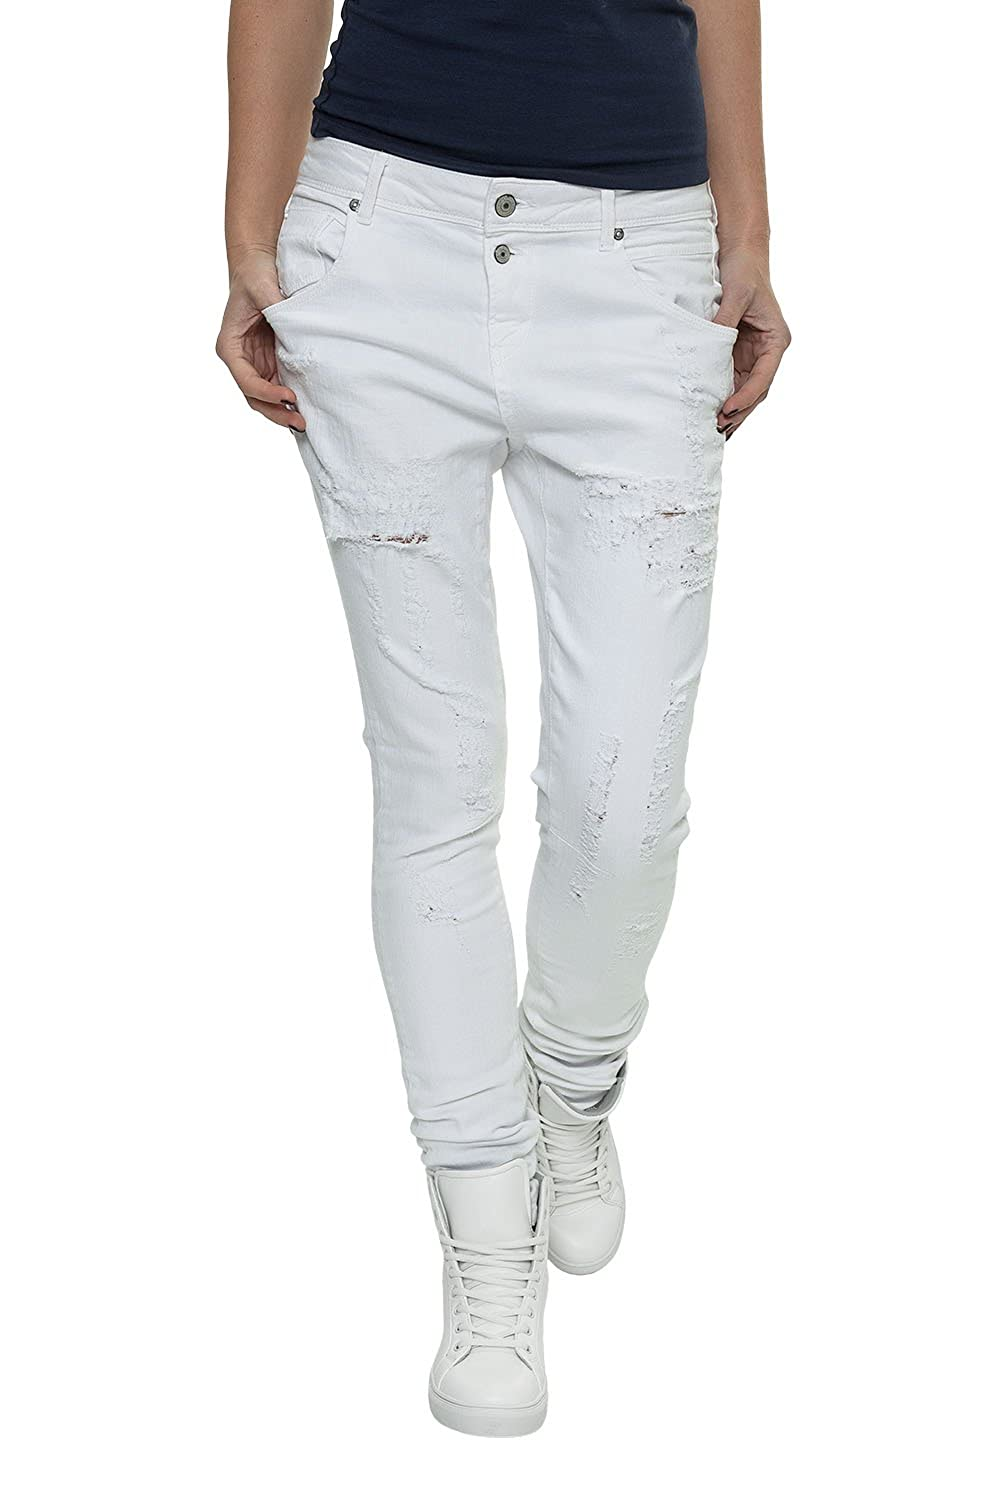 Only Women's Slim Fit Jeans Antifit Destroyed Jeans White